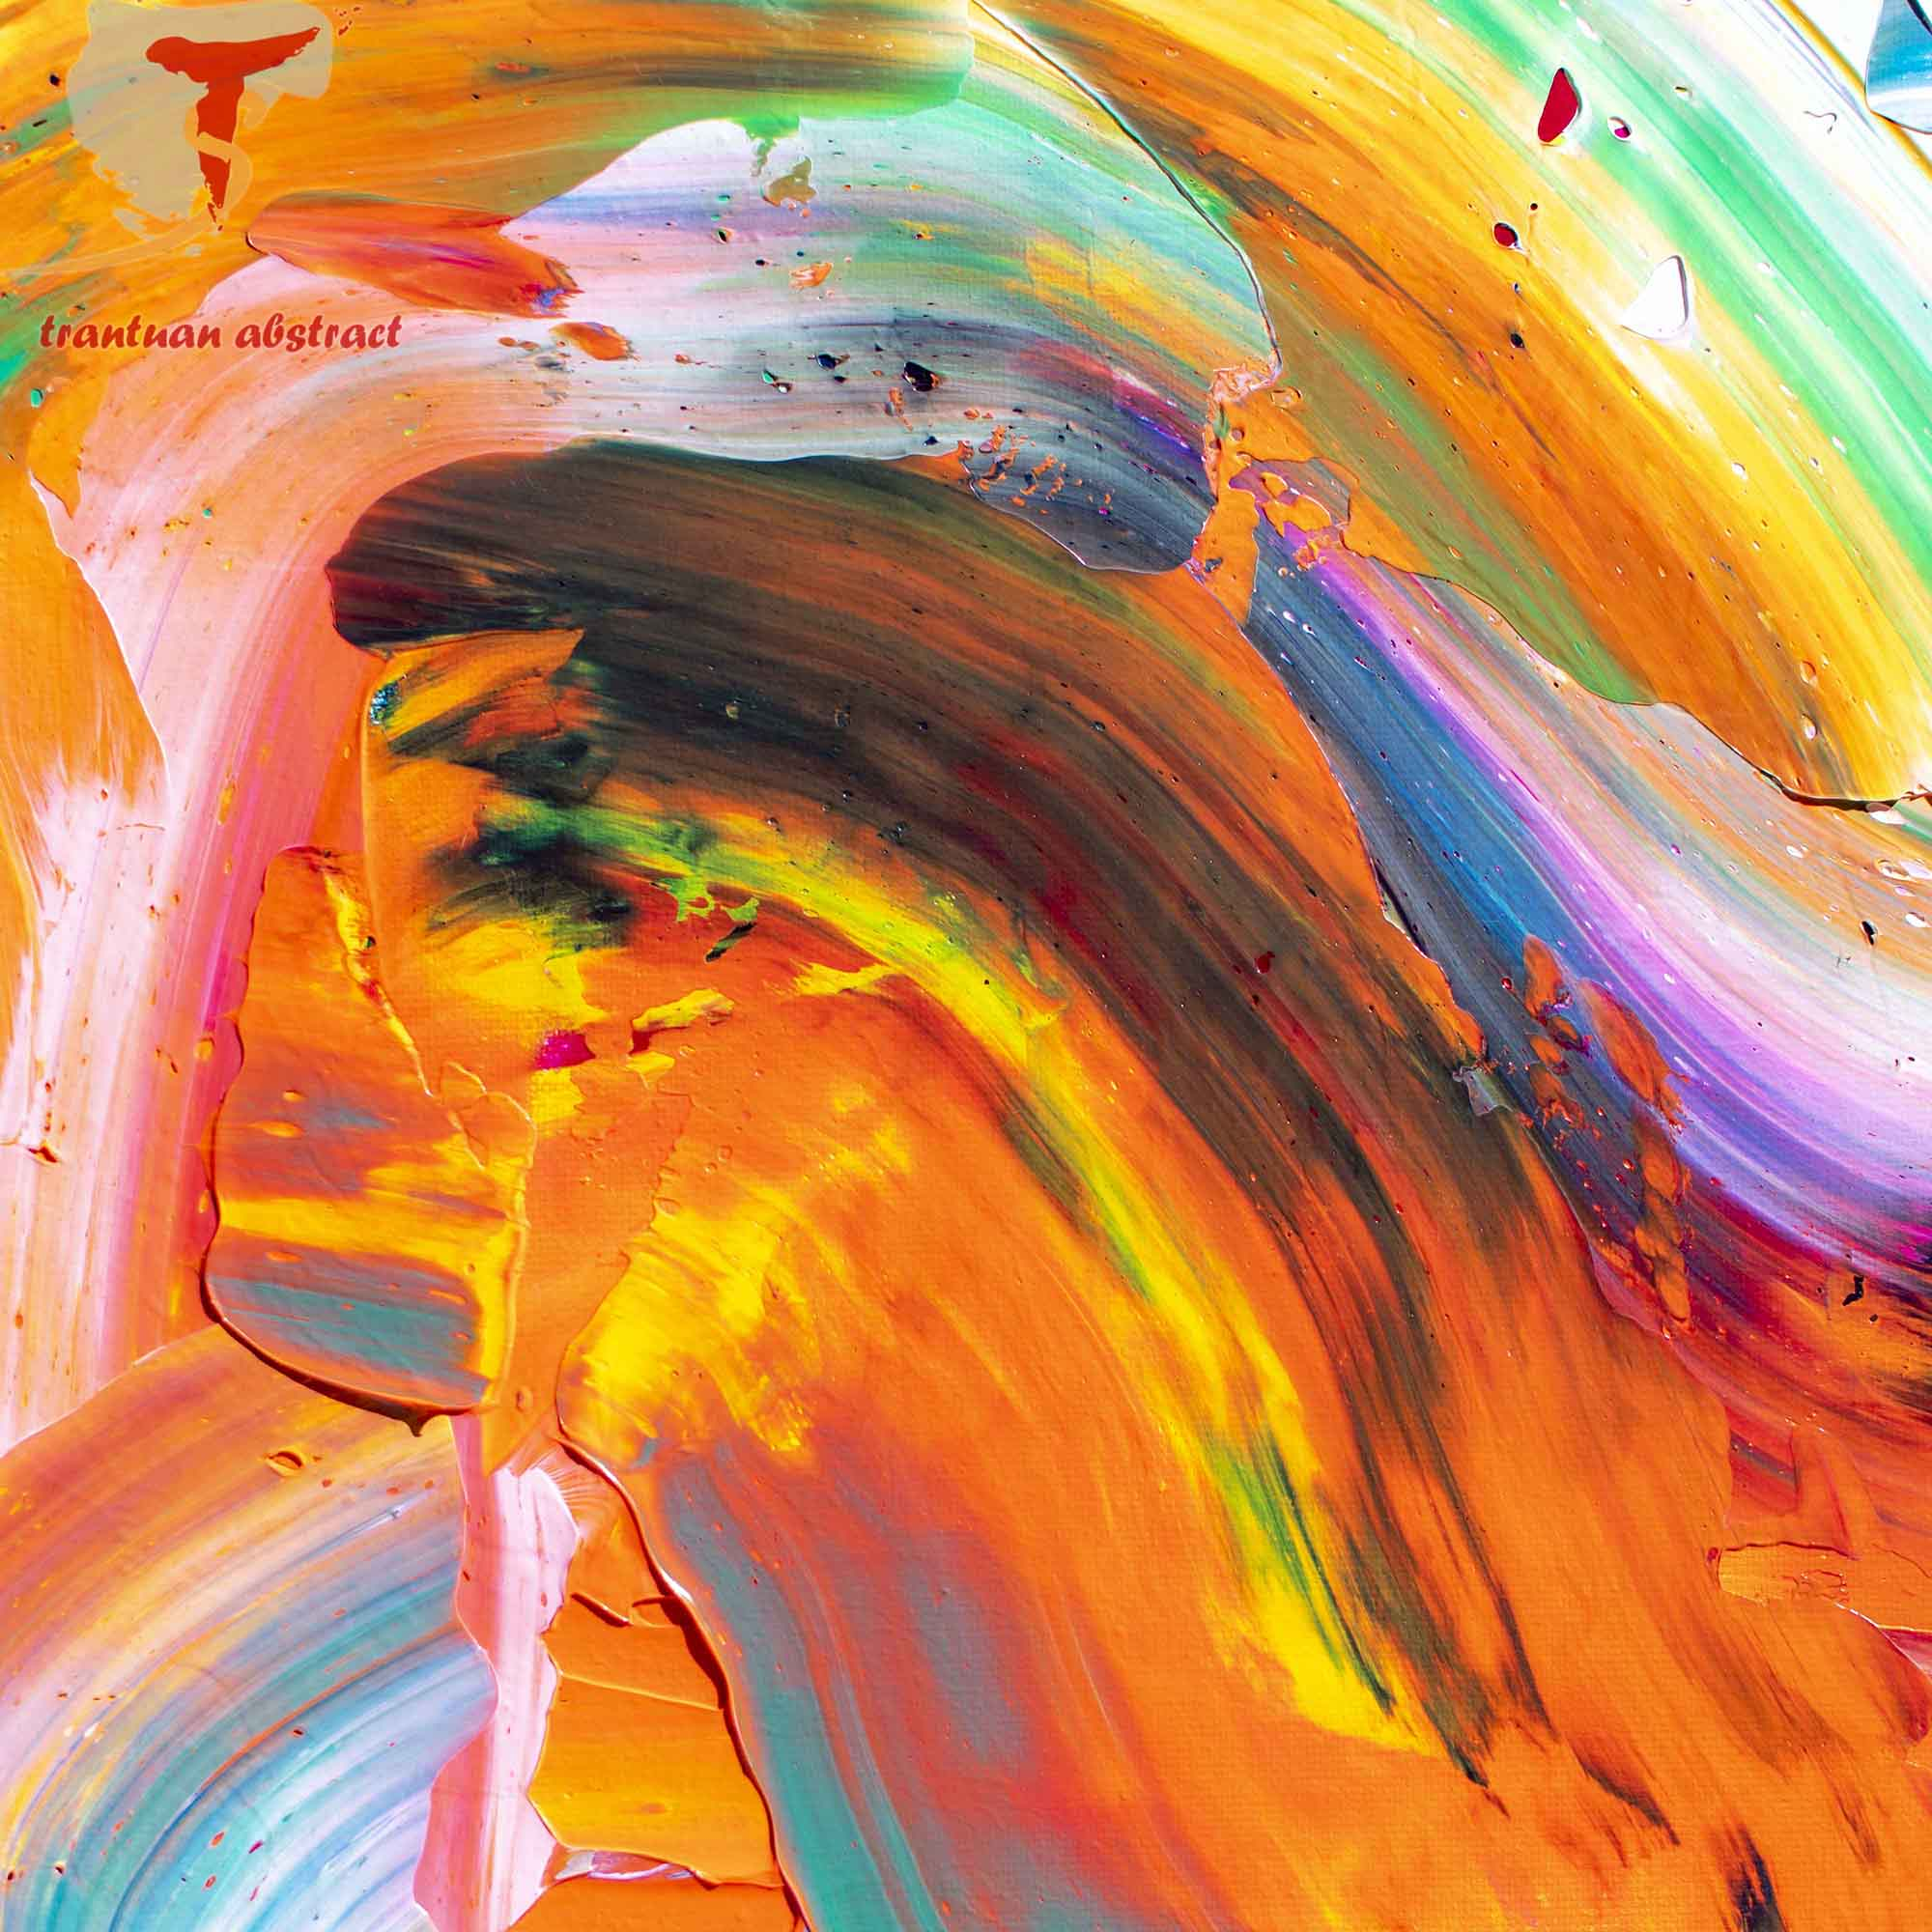 Tran Tuan Abstract The Return of Beautiful Memories 2021 135 x 80 x 5 cm Acrylic on Canvas Painting Detail